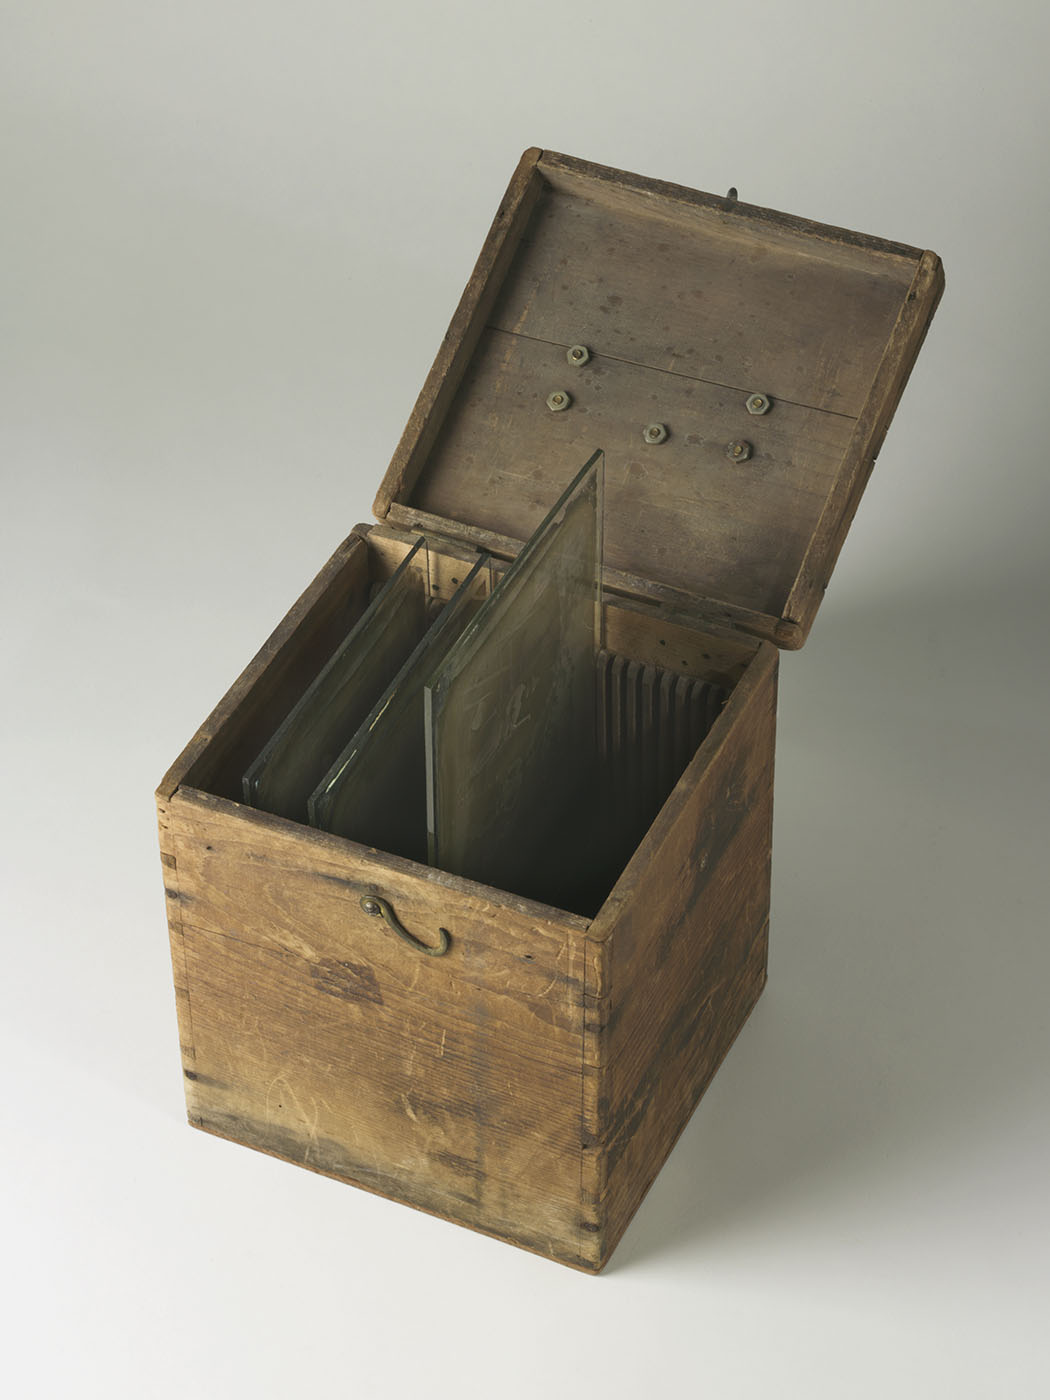 Wooden box, specially made to house glass plates, shown with its lid open. - click to view larger image